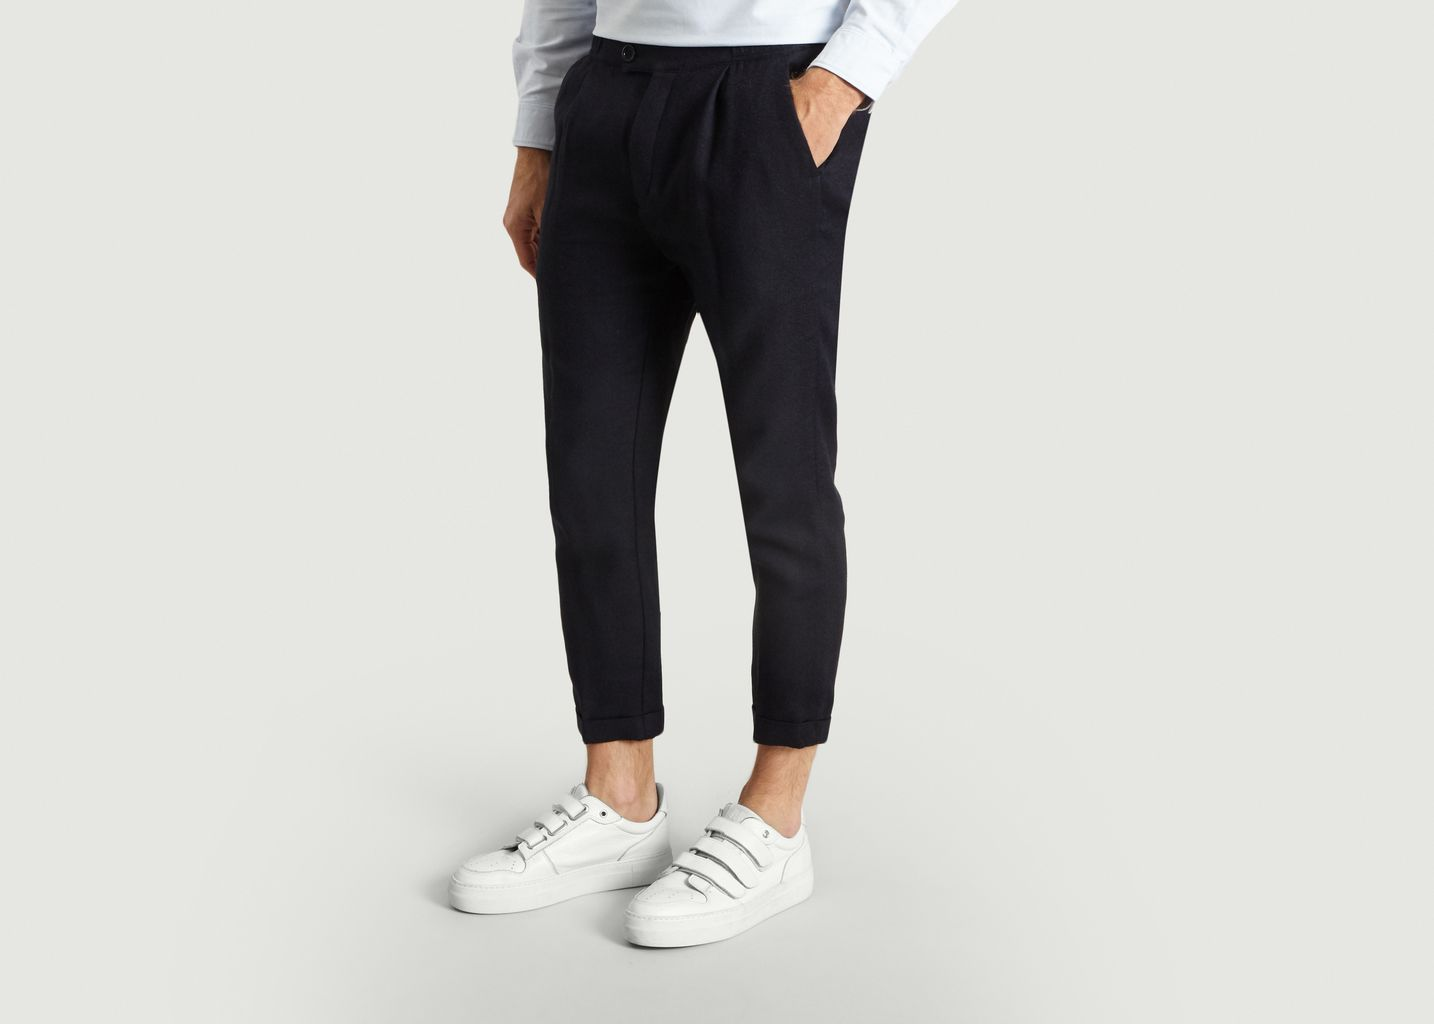 Pantalon 7/8e GN11 - Commune de Paris